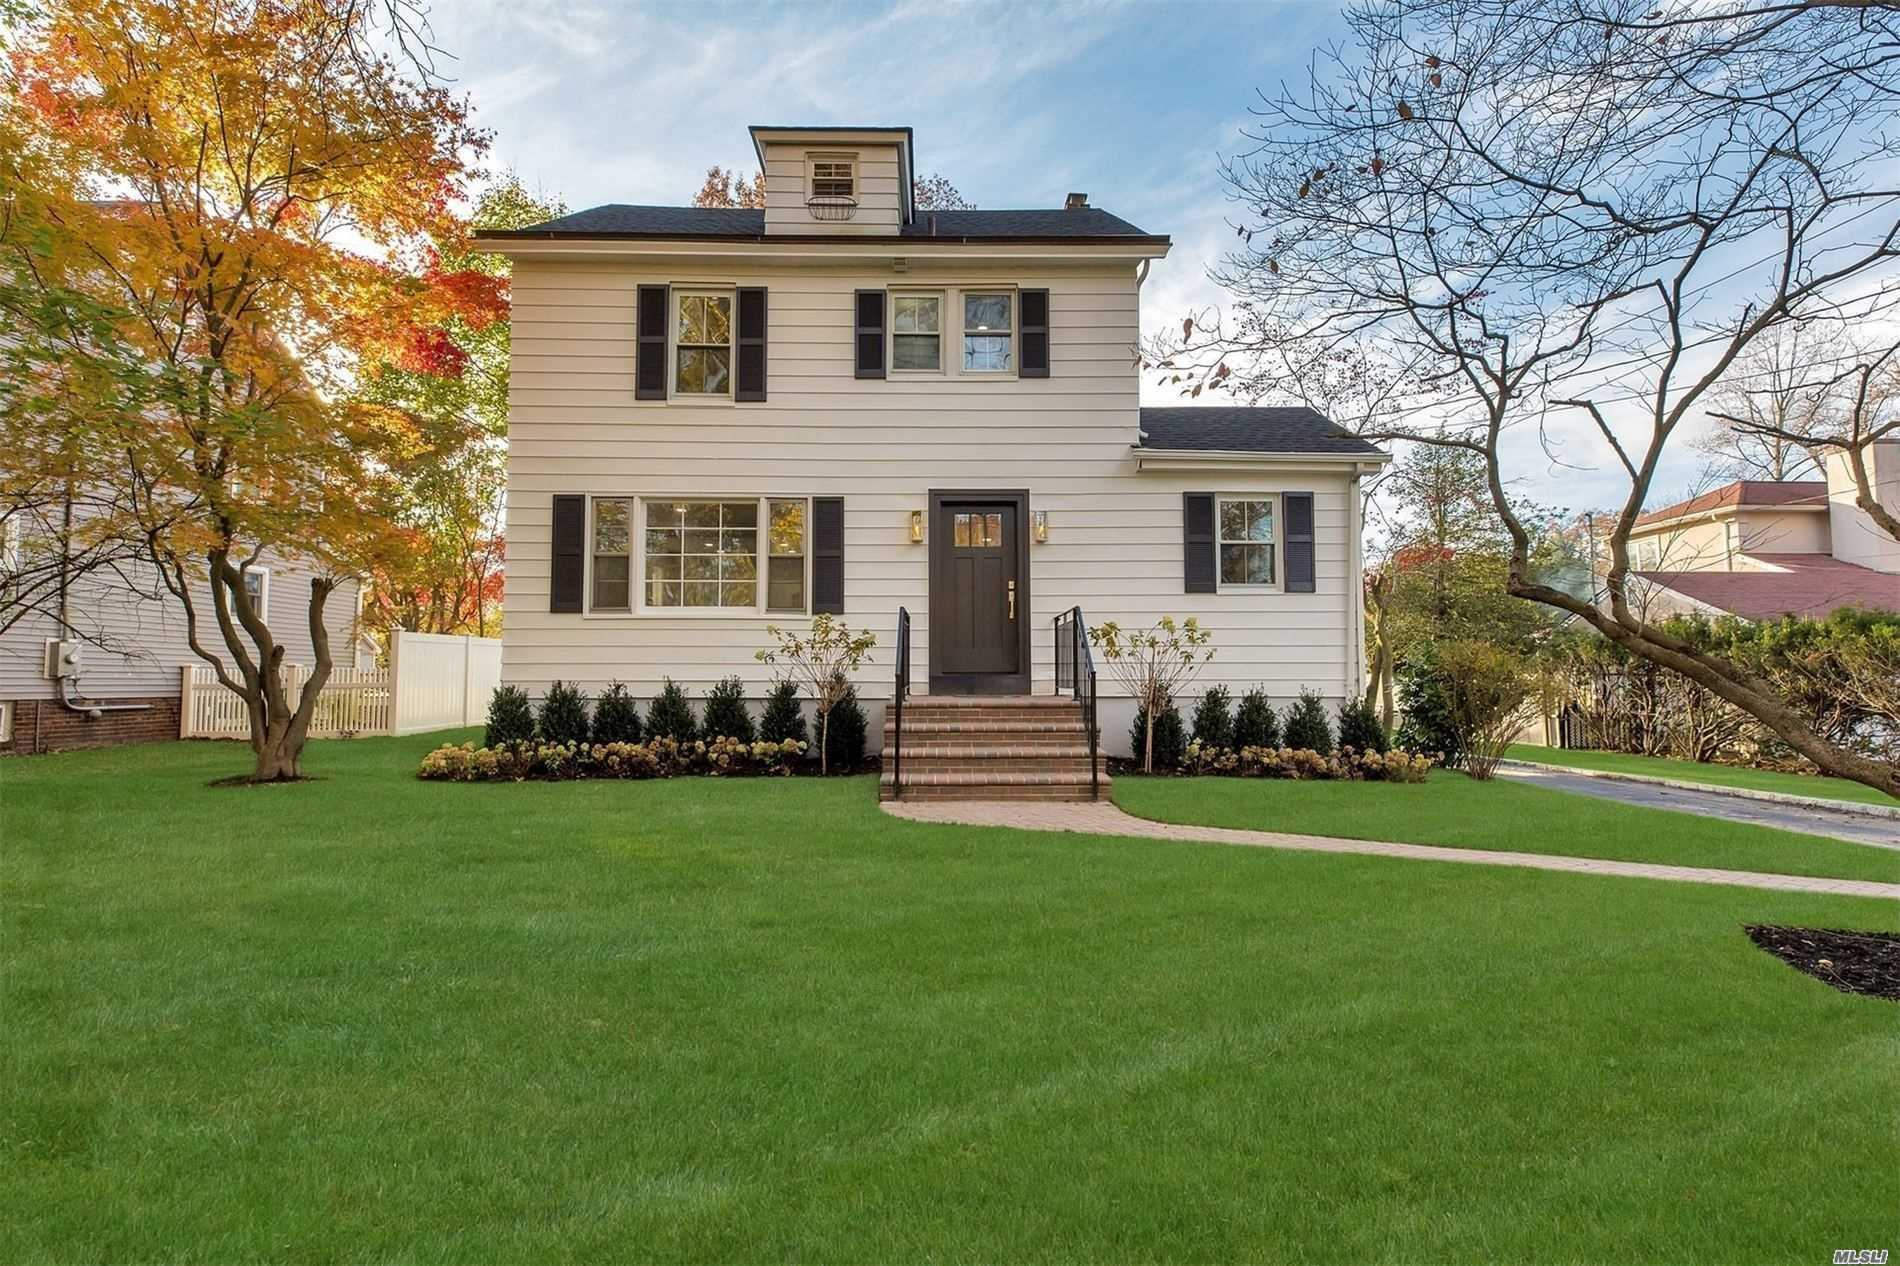 Welcome home....offers all the sophistication of city living, set on private pristine Country property. Lavish lifestyle awaits you Near all, including LIRR, Vibrant Village beaches and GOLF....get your clubs ready! Pool parties are in YOUR future.